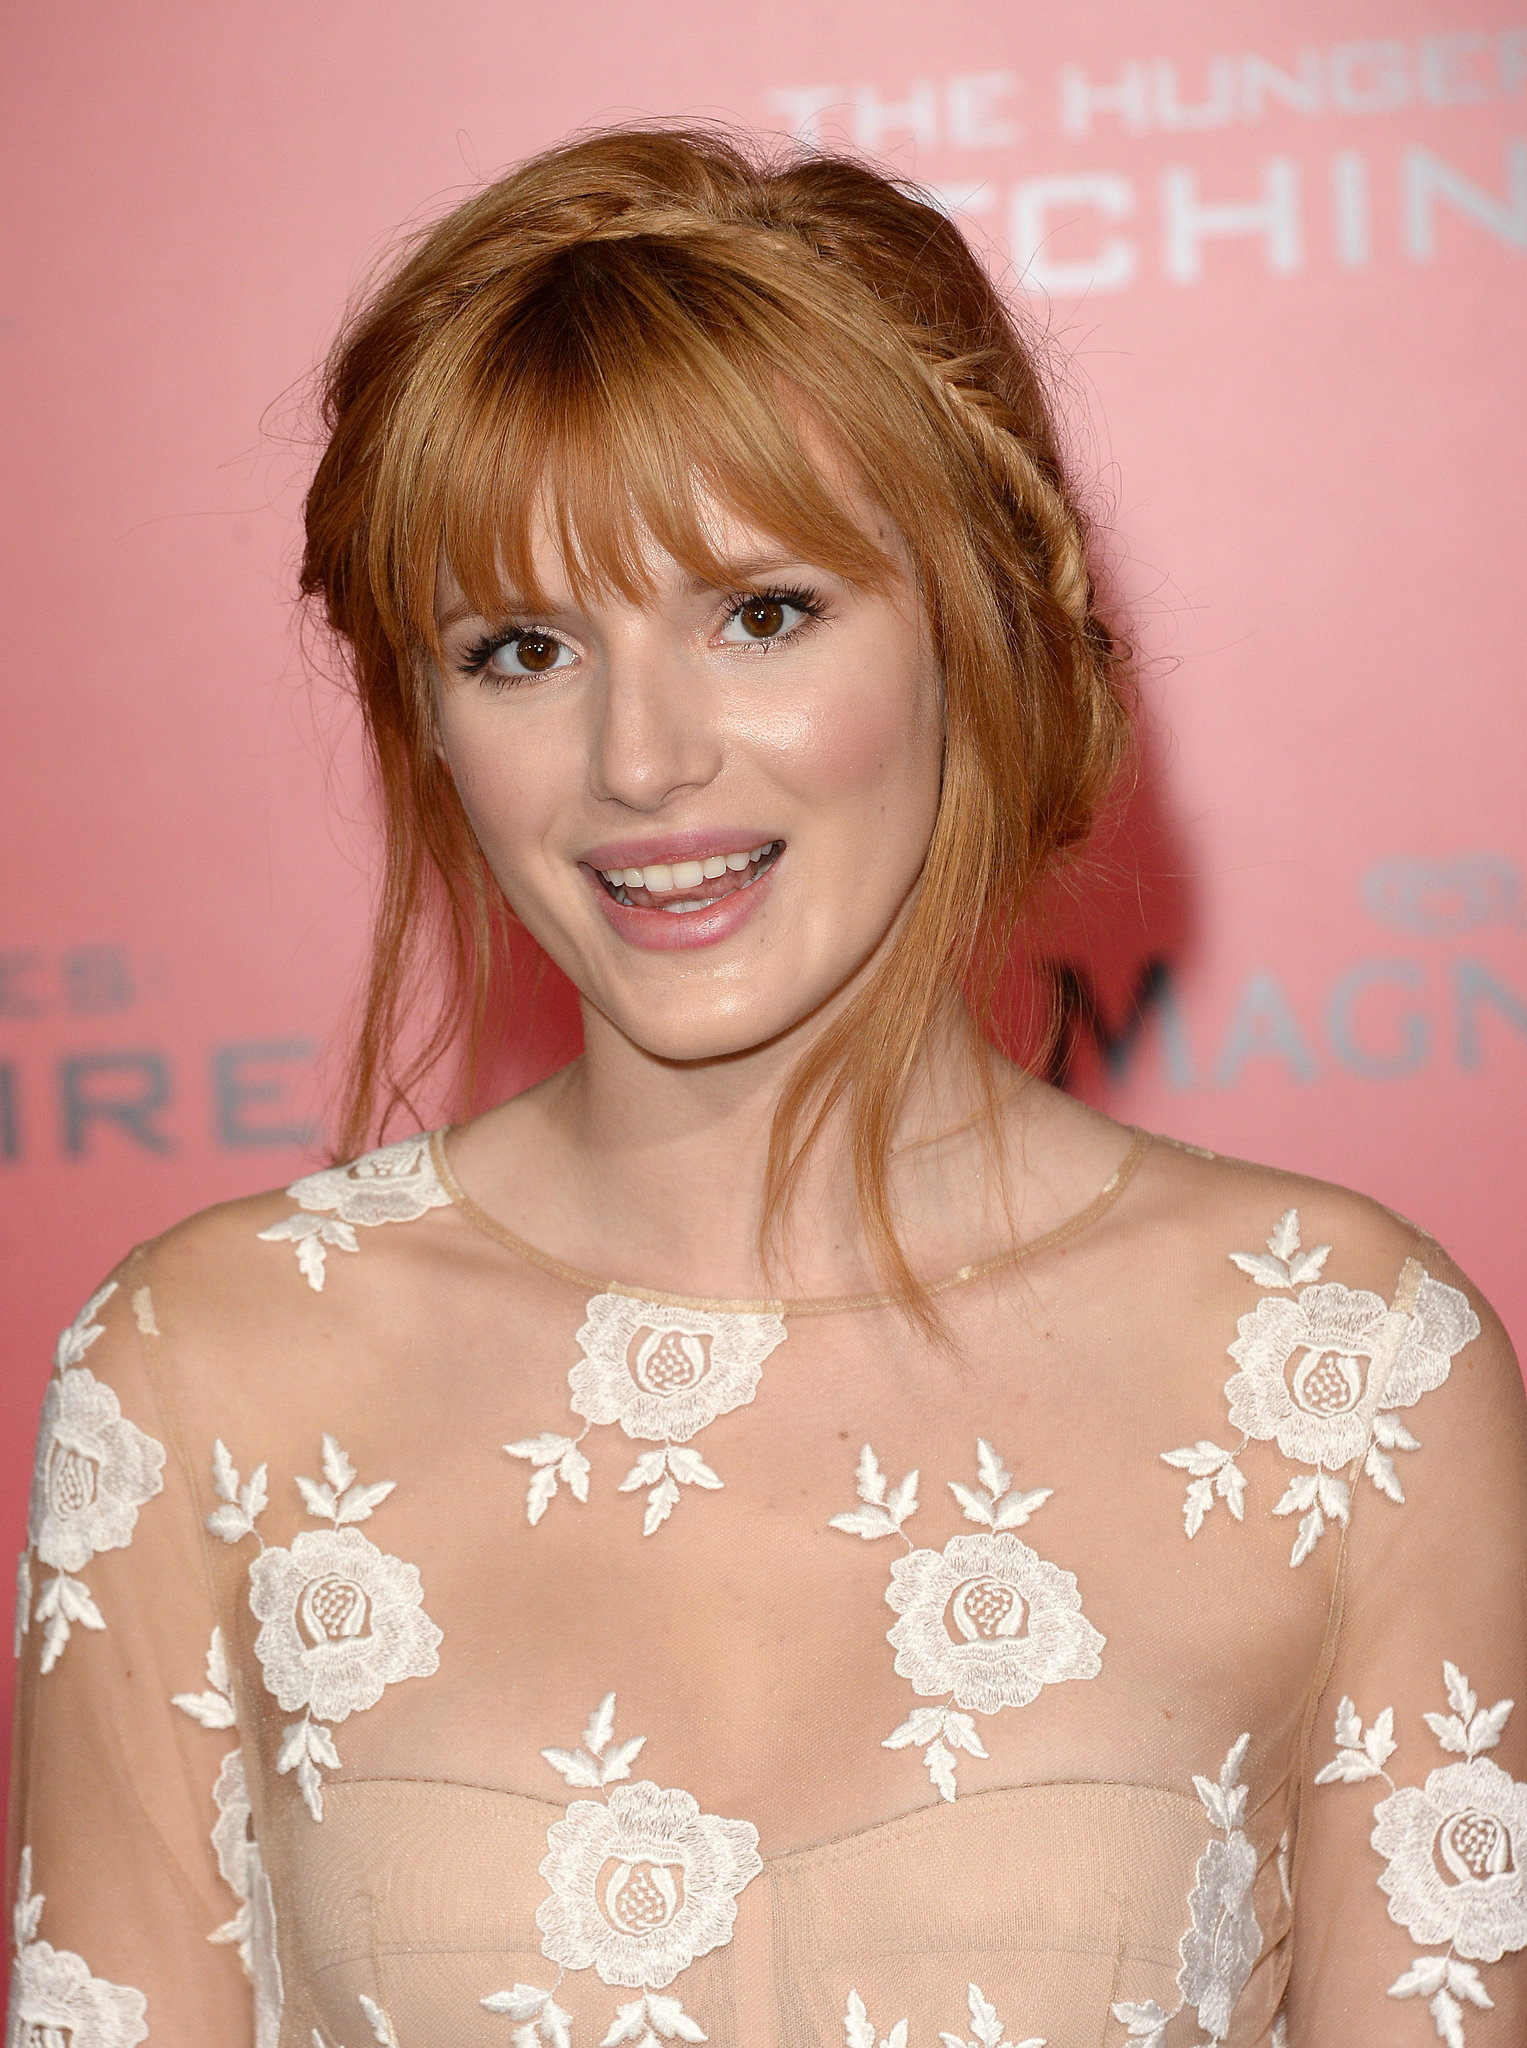 Bella Thorne games